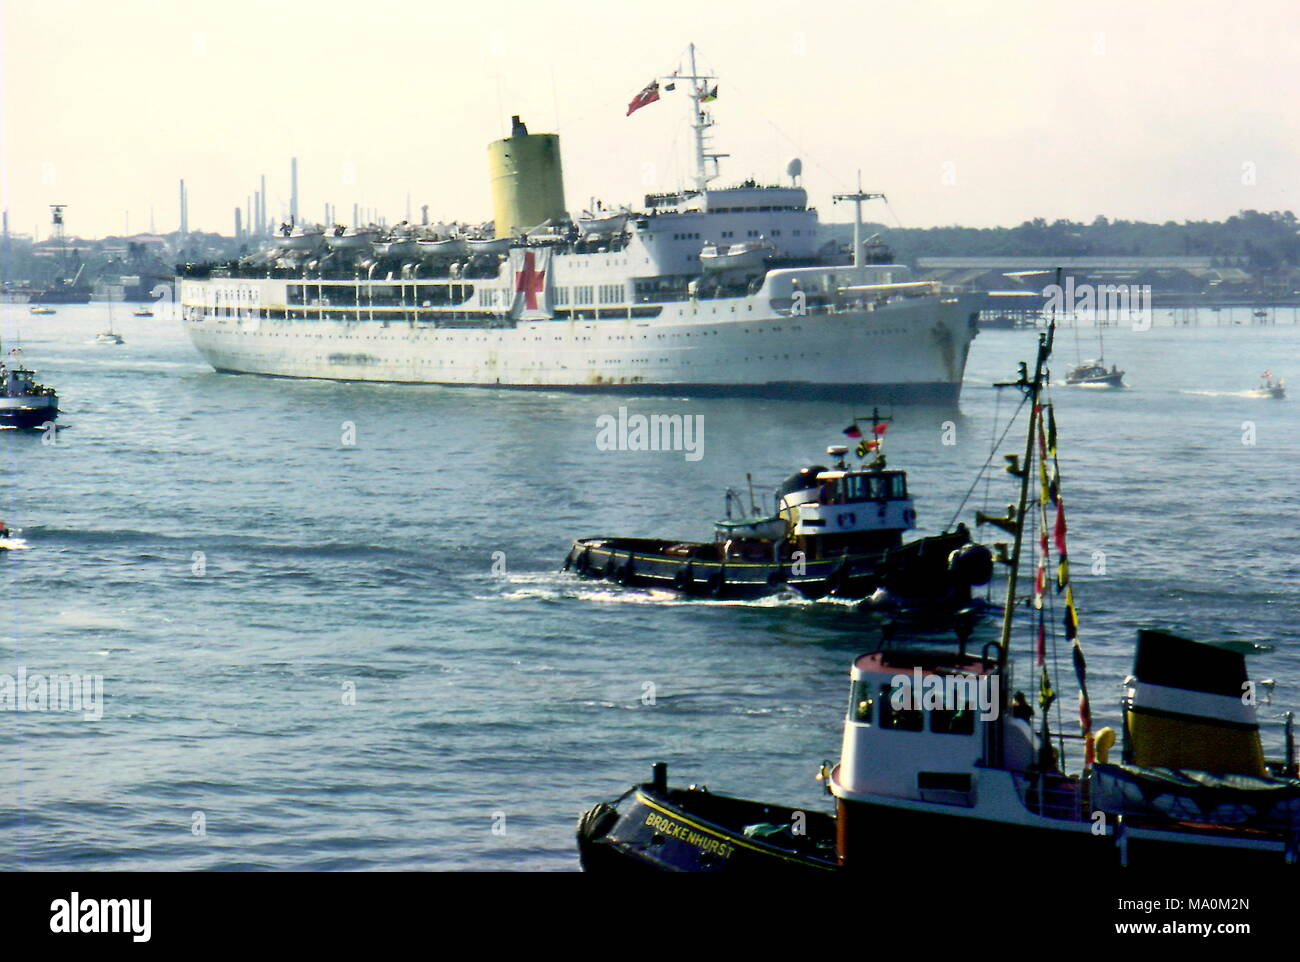 AJAXNETPHOTO. 1982. SOUTHAMPTON, ENGLAND. - WOUNDED RETURN - THE HOSPITAL SHIP UGANDA RETURNING TO SOUTHAMPTON IN 1982 CARRYING THE WOUNDED FROM THE FALKLAND ISLANDS CONFLICT.  PHOTO:JONATHAN EASTLAND/AJAX.  REF:UGANDA 910574. - Stock Image